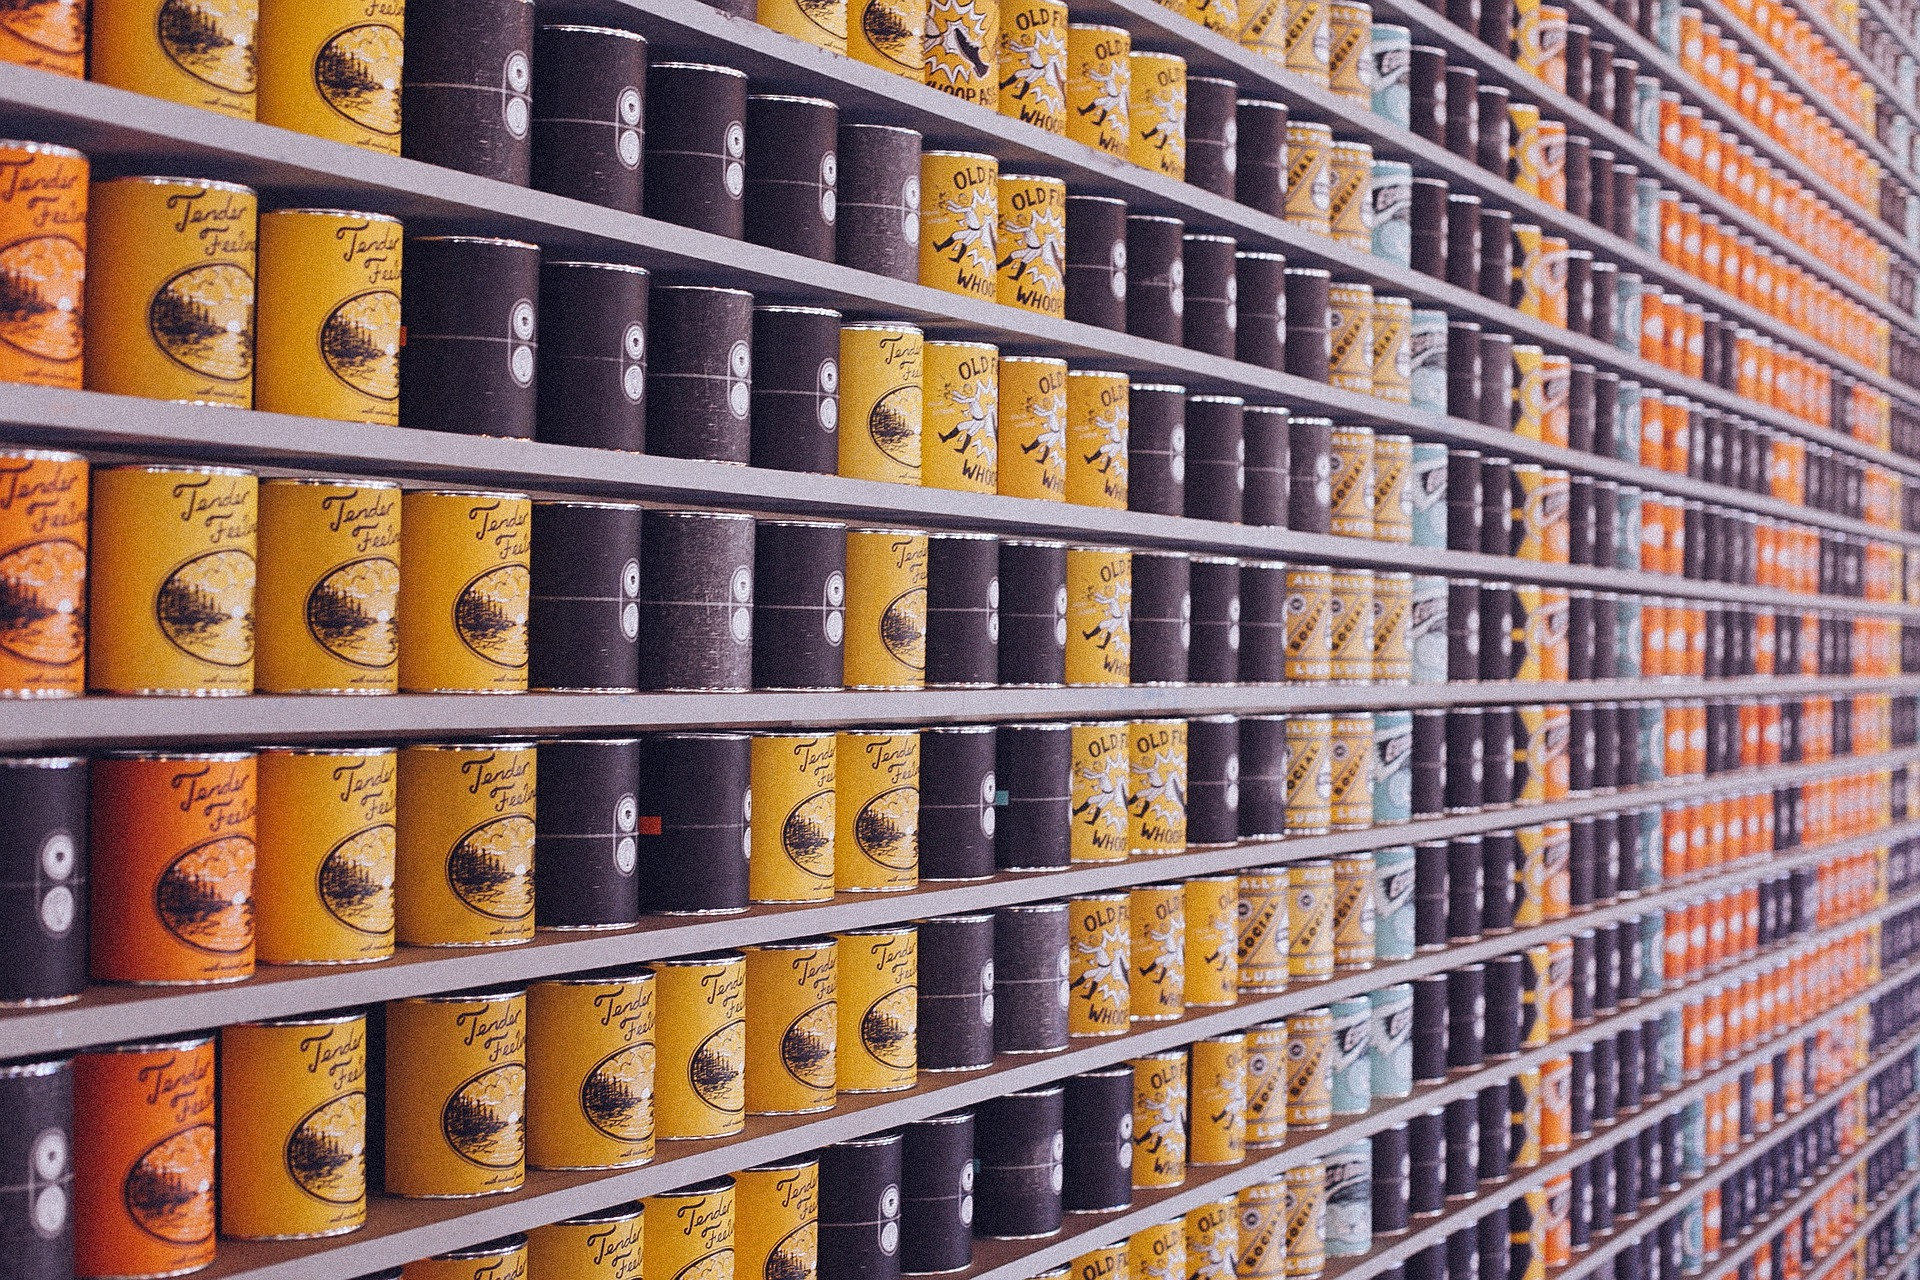 Cans of food stacked on a shelf in a grocery store